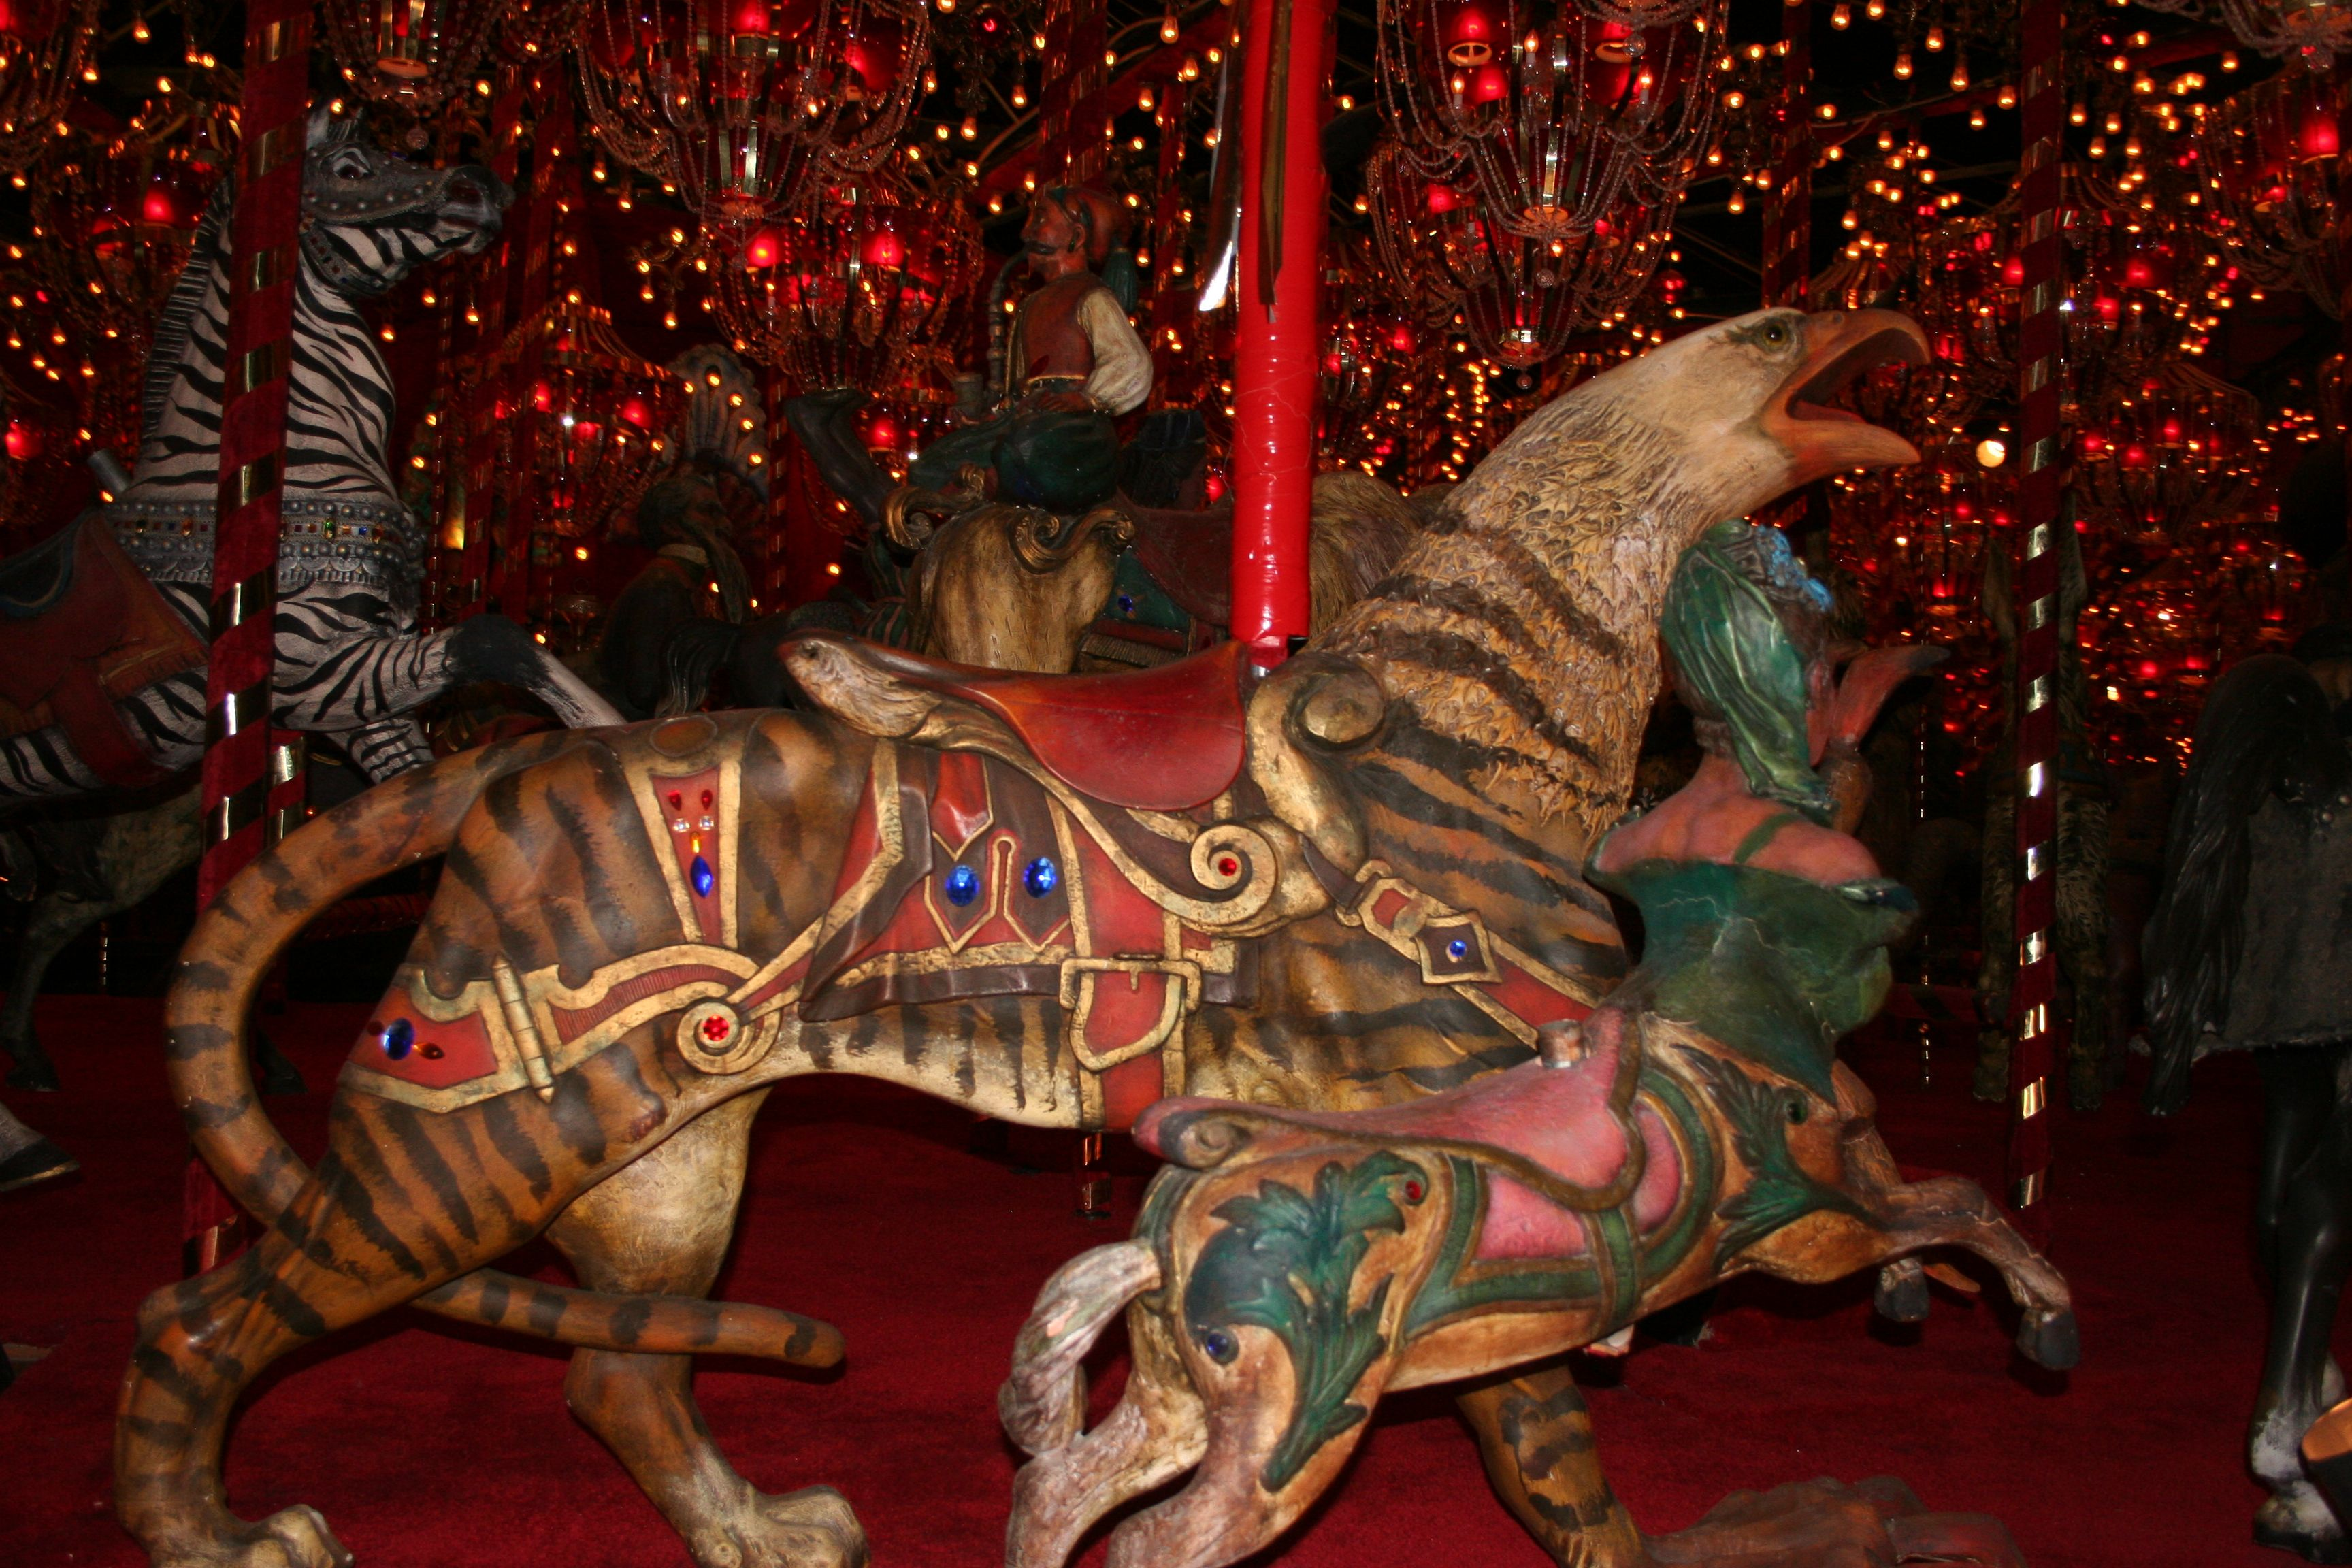 National carousel association denver zoo carousel african wild dog - Tiger Griffin On The Carousel In The House On The Rock This Carousel Features In Neil Gaiman S Excellent Novel American Gods And No Wonder